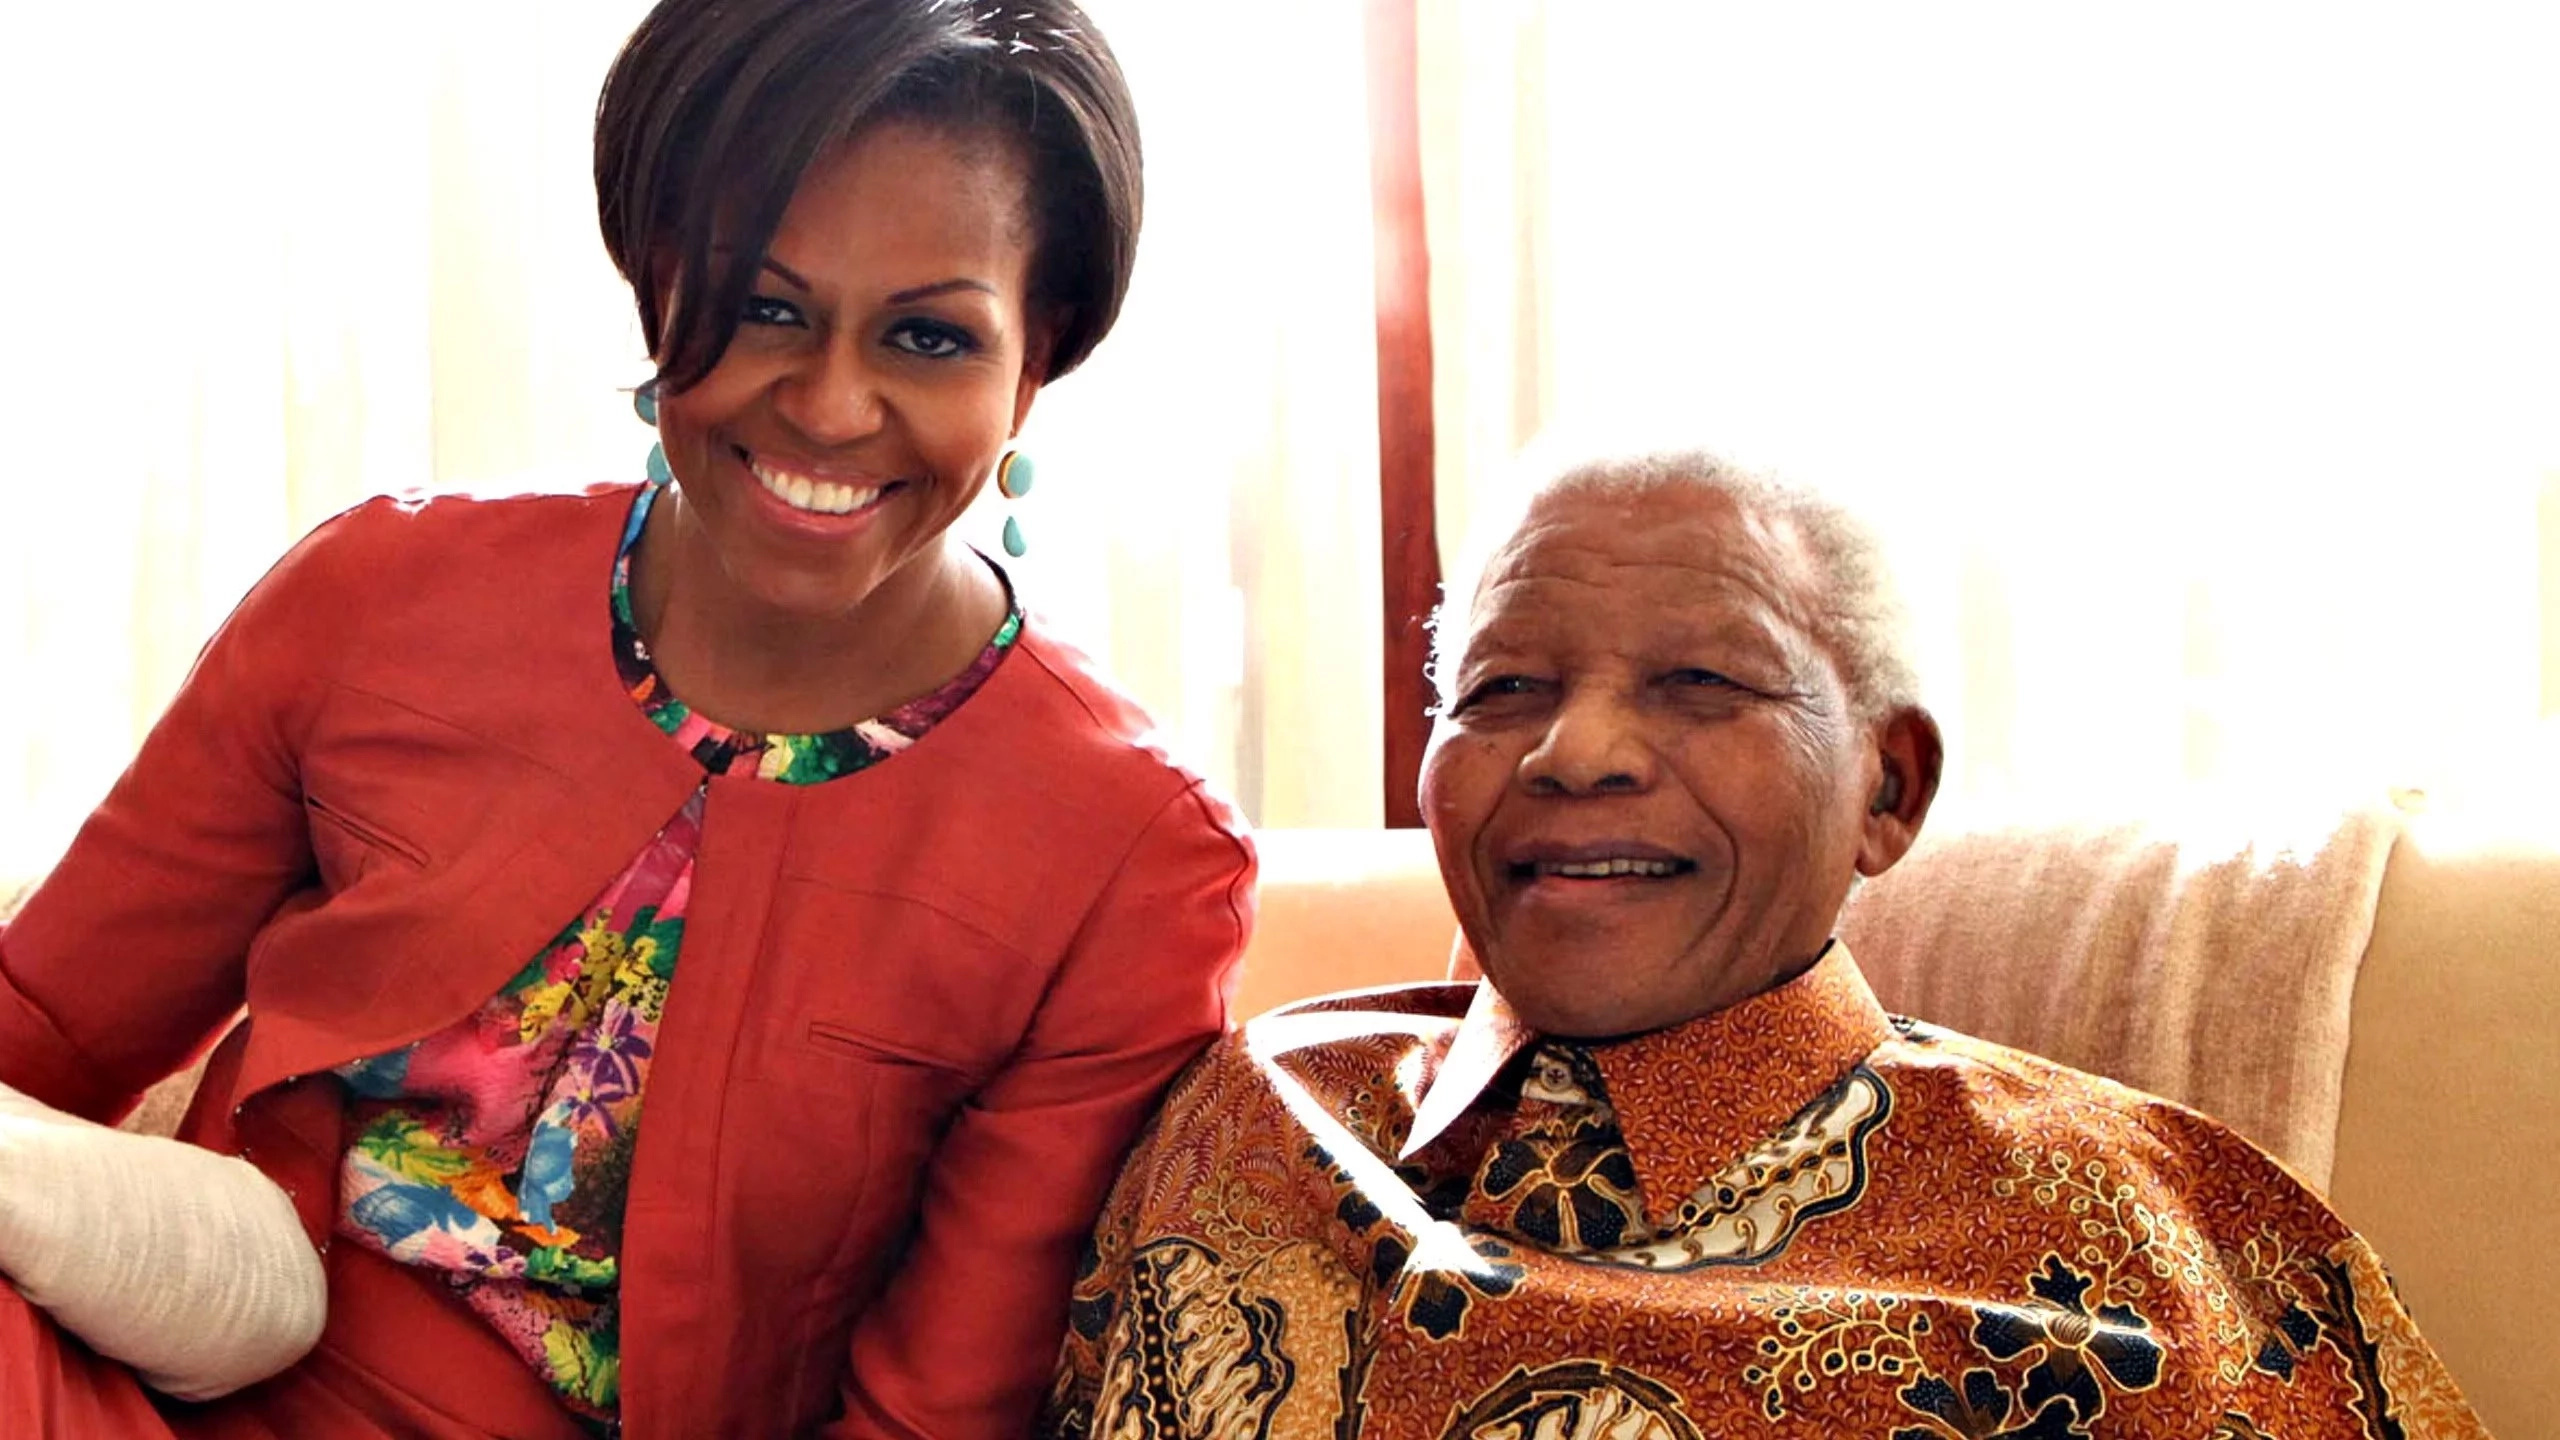 Michelle Obama also met Mandela in 2011. Photo: New York Daily News